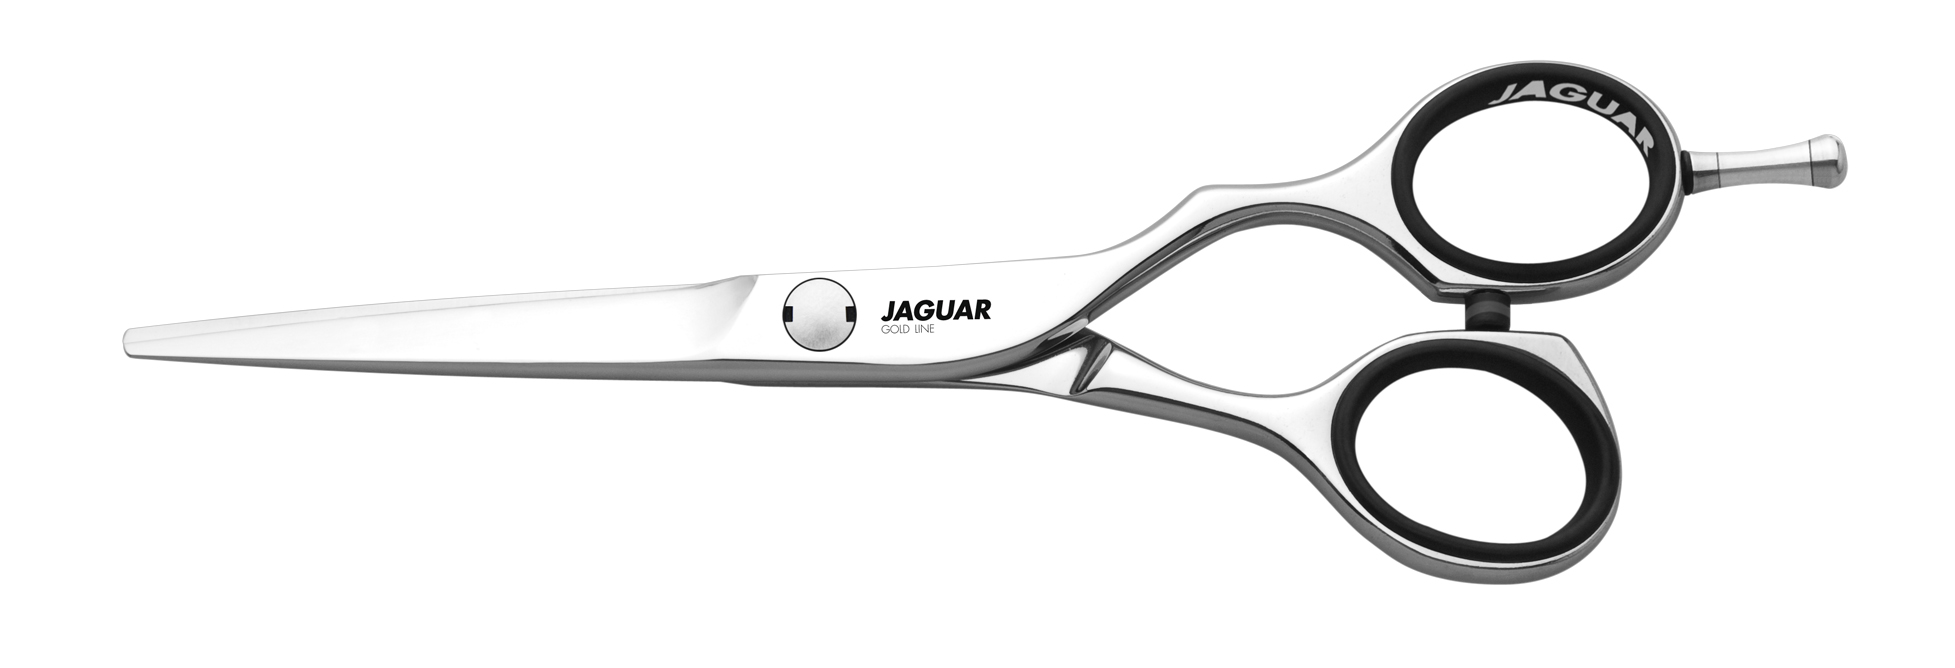 JAGUAR Ножницы Jaguar Diamond E 5'(13cm)GL jaguar ножницы jaguar dynasty 5 75 15cm gl